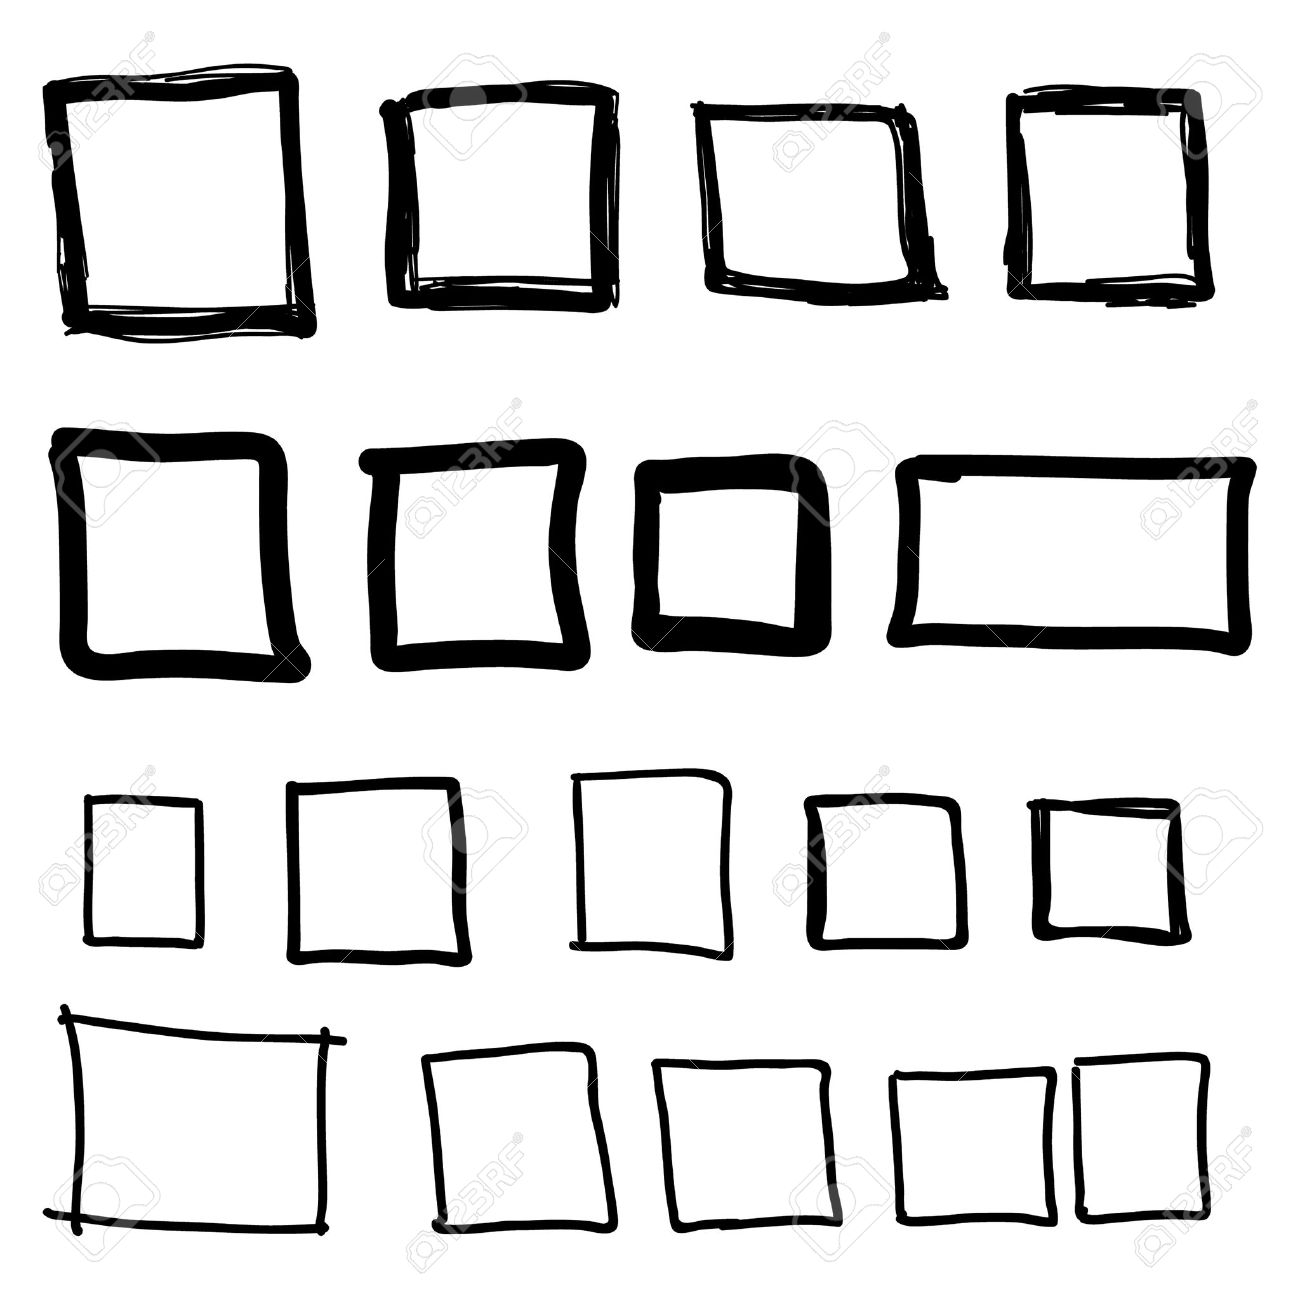 Set Hand Drawn Square Felt Tip Pen Objects Text Box And Frames